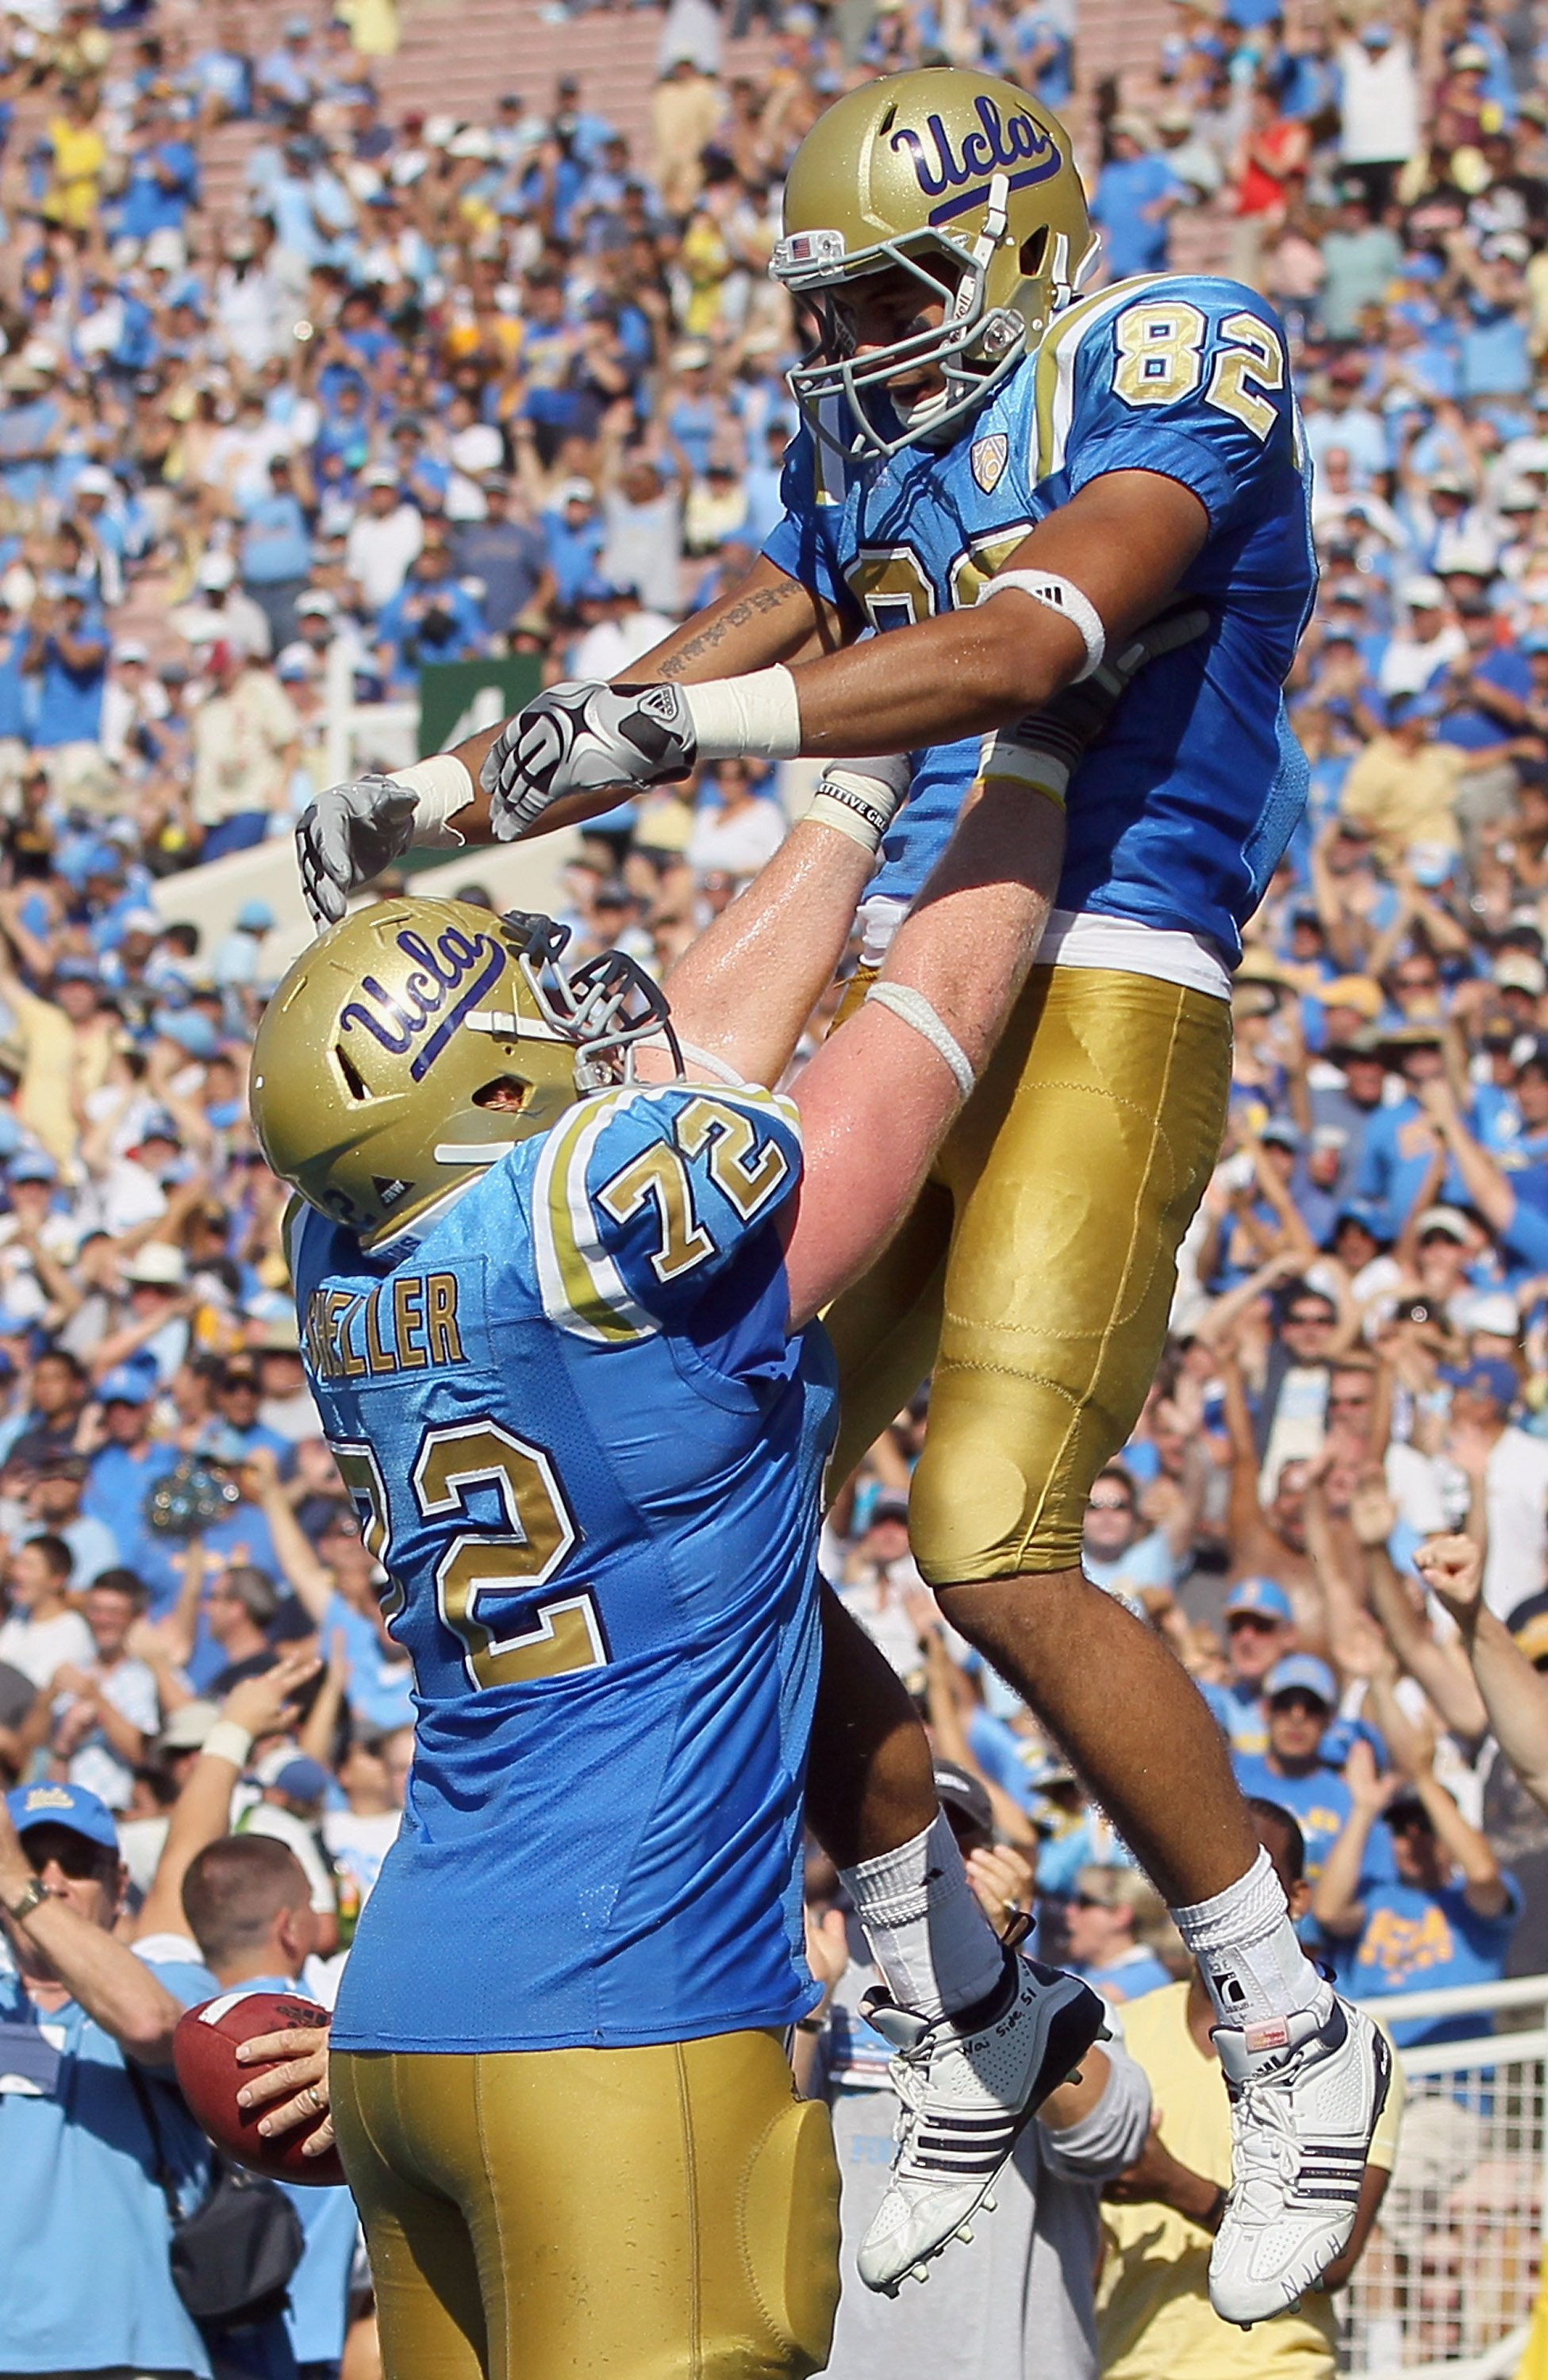 PASADENA, CA - OCTOBER 02:  Sean Sheller #72 and  Taylor Embree #82 of the UCLA Bruins celebrate Embree's two-point conversion against the Washington State Cougars during the third quarter at the Rose Bowl on October 2, 2010 in Pasadena, California. UCLA